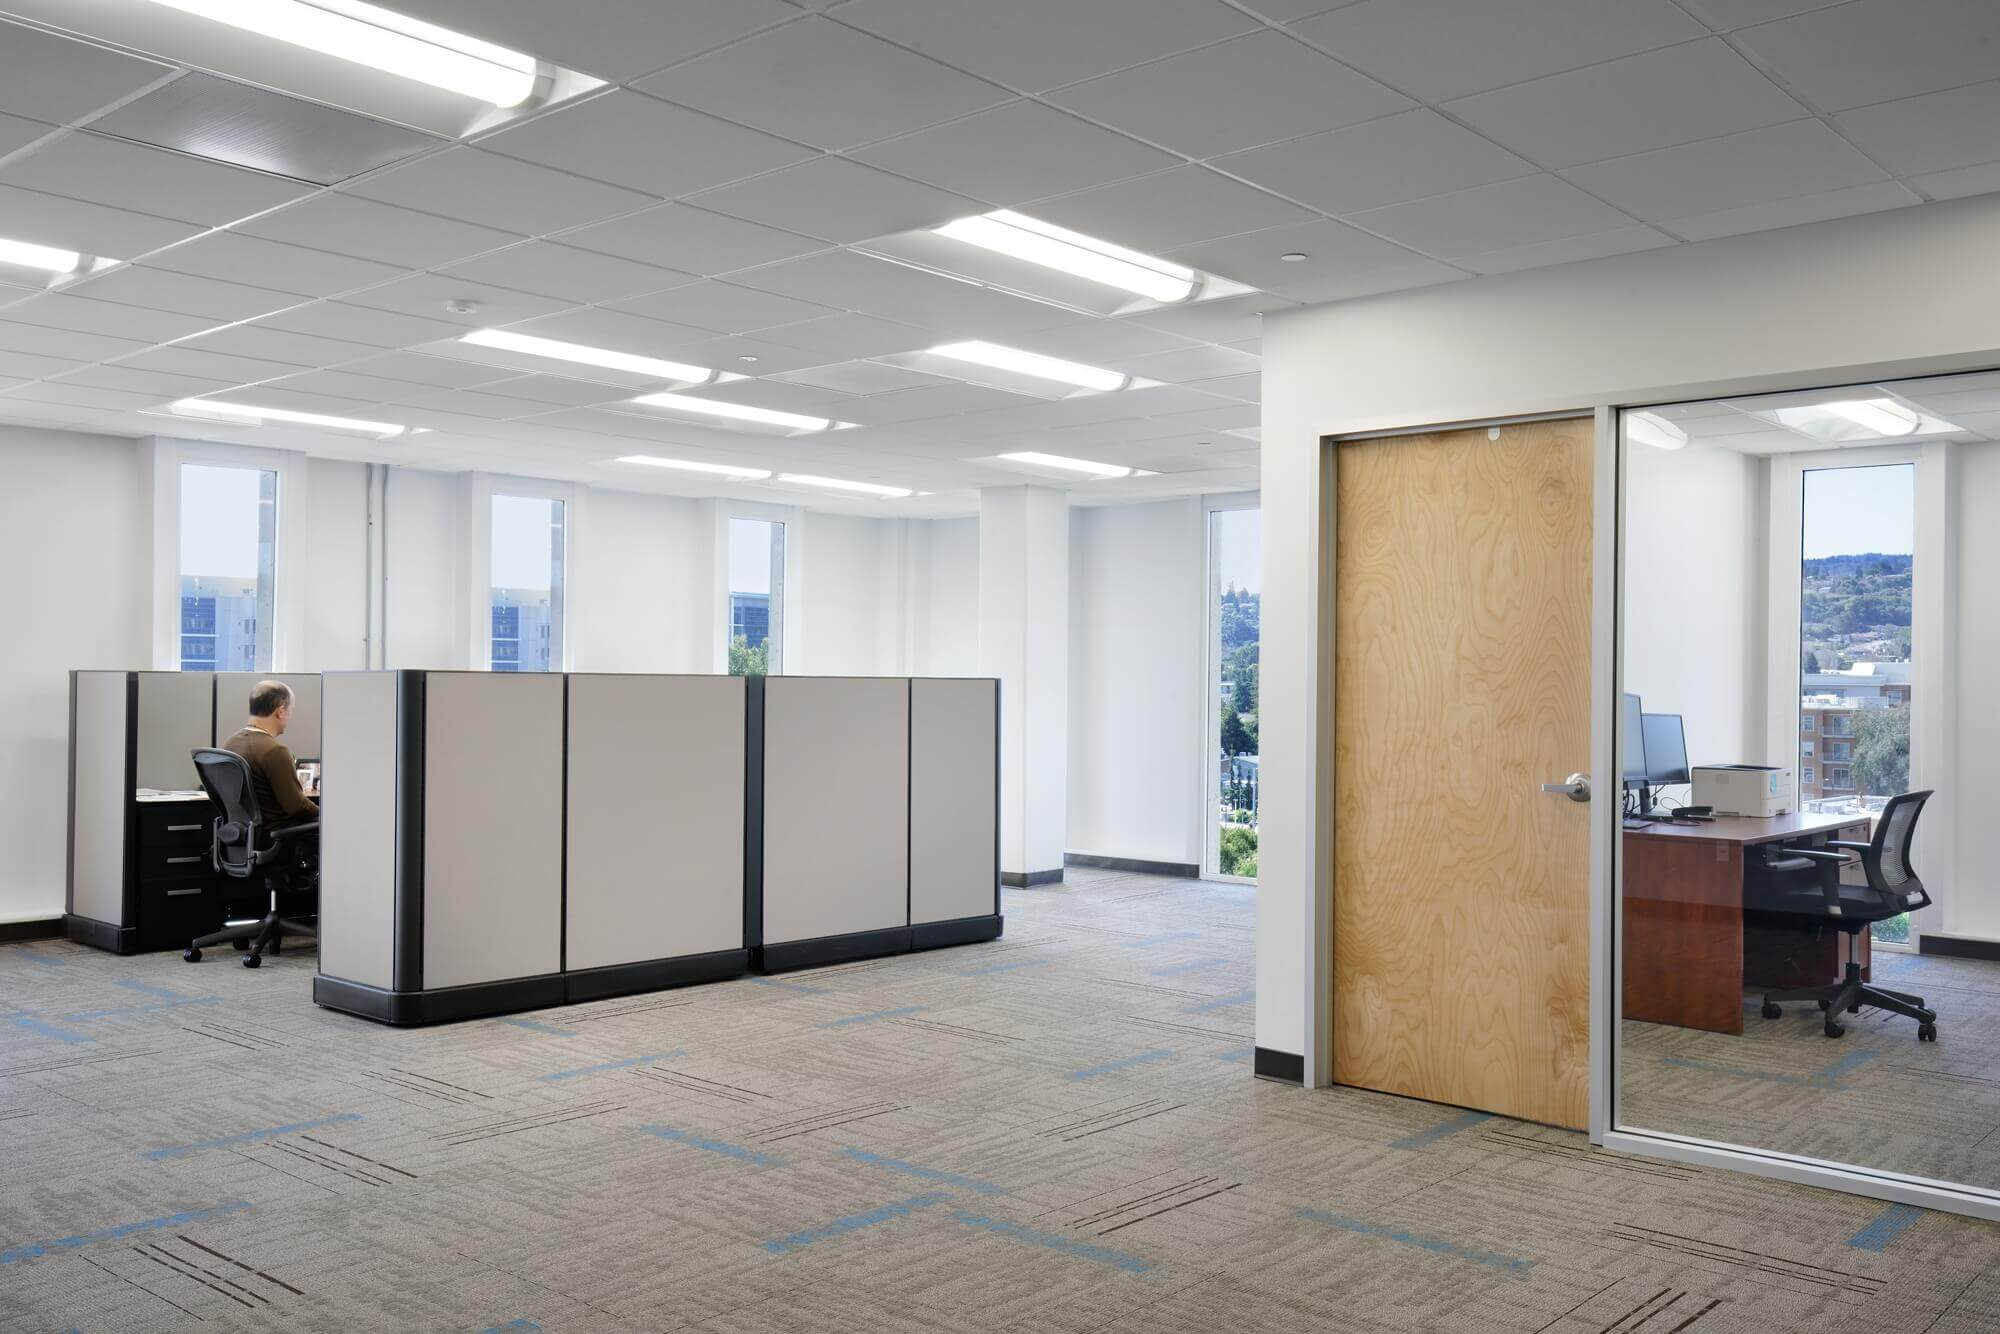 Respira Therapeutics open space office construction with wooden door and large glass window